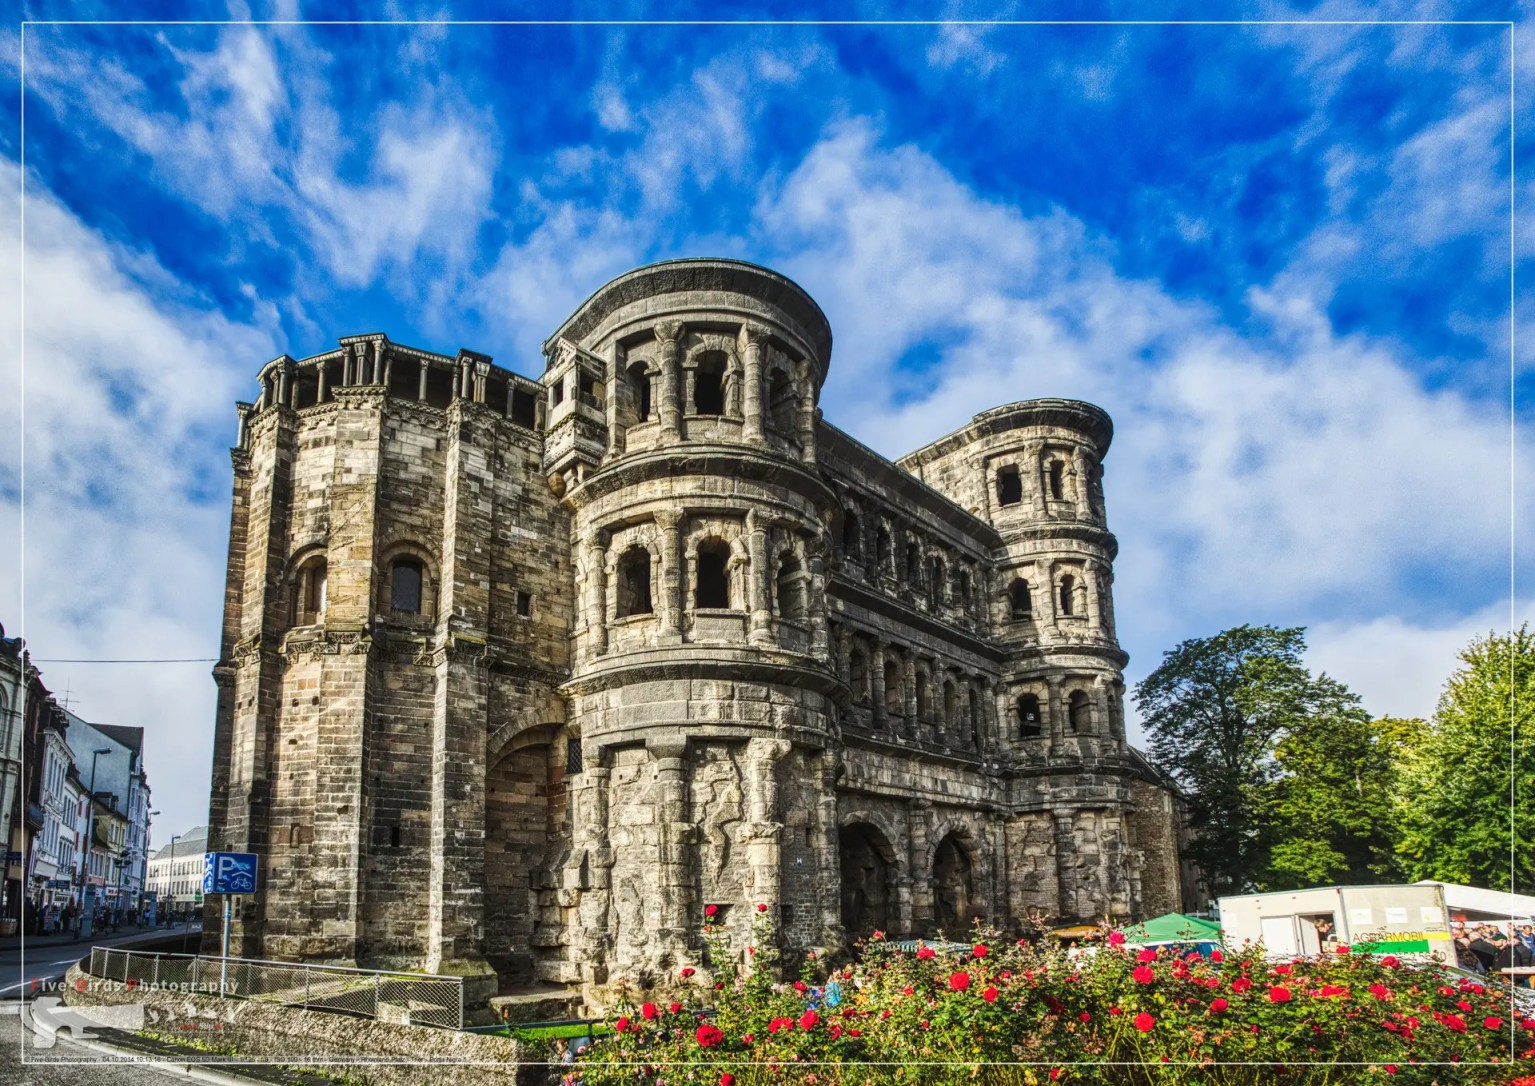 Photography of the Porta Nigra, a large Roman city gate in Trier, Germany.